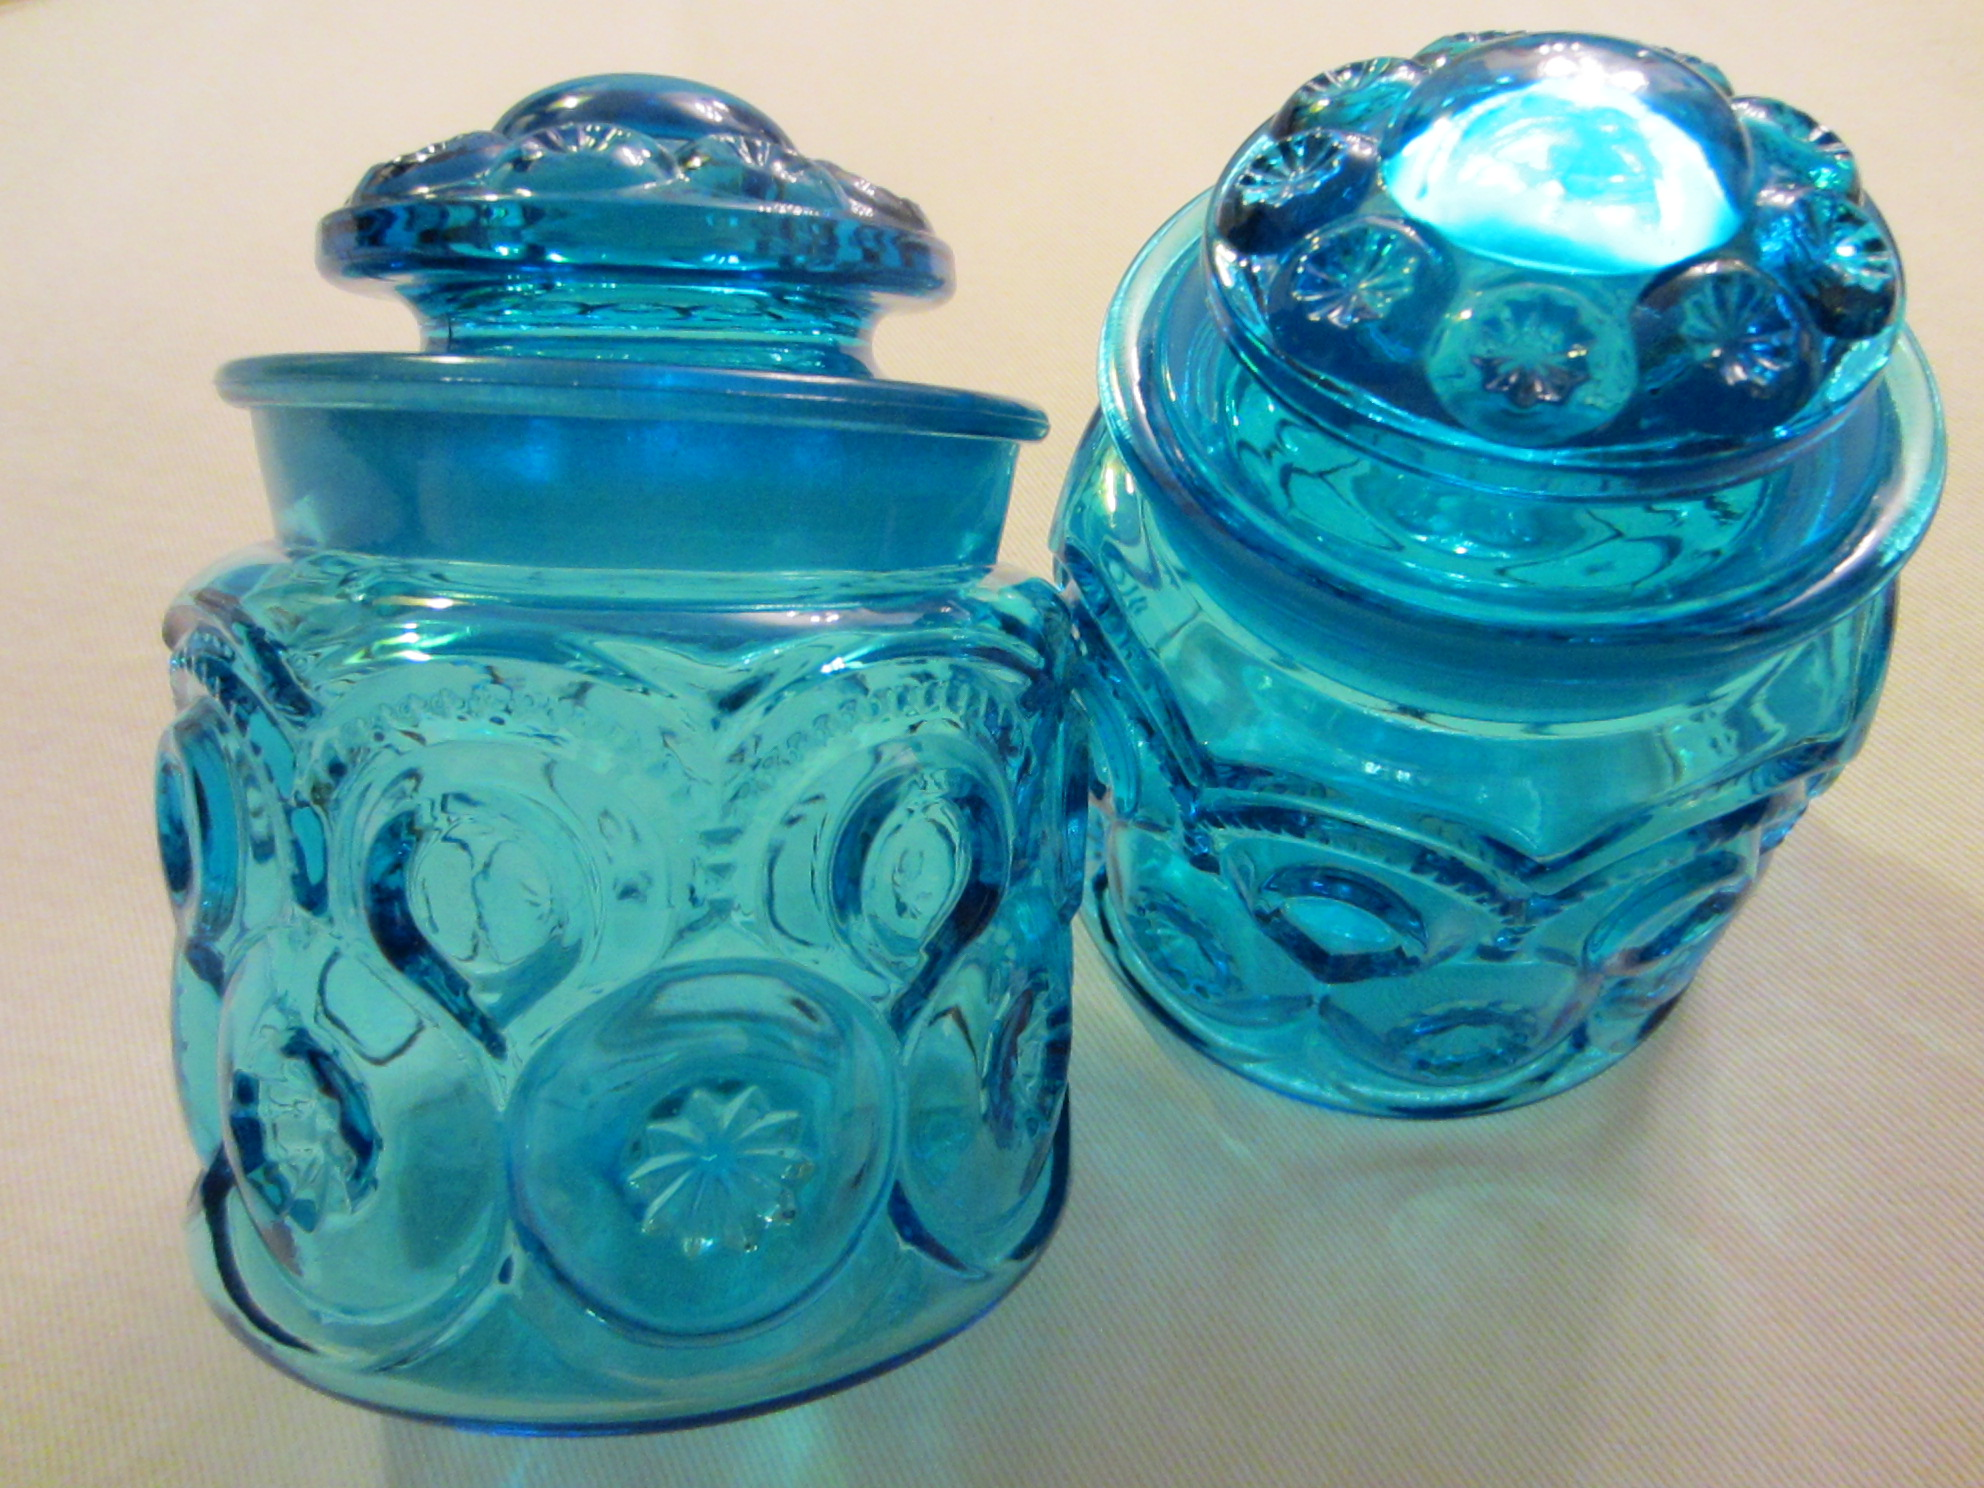 Jars On Sale L E Smith Blue Glass Apothecary Lidded Jars Moon Stars For